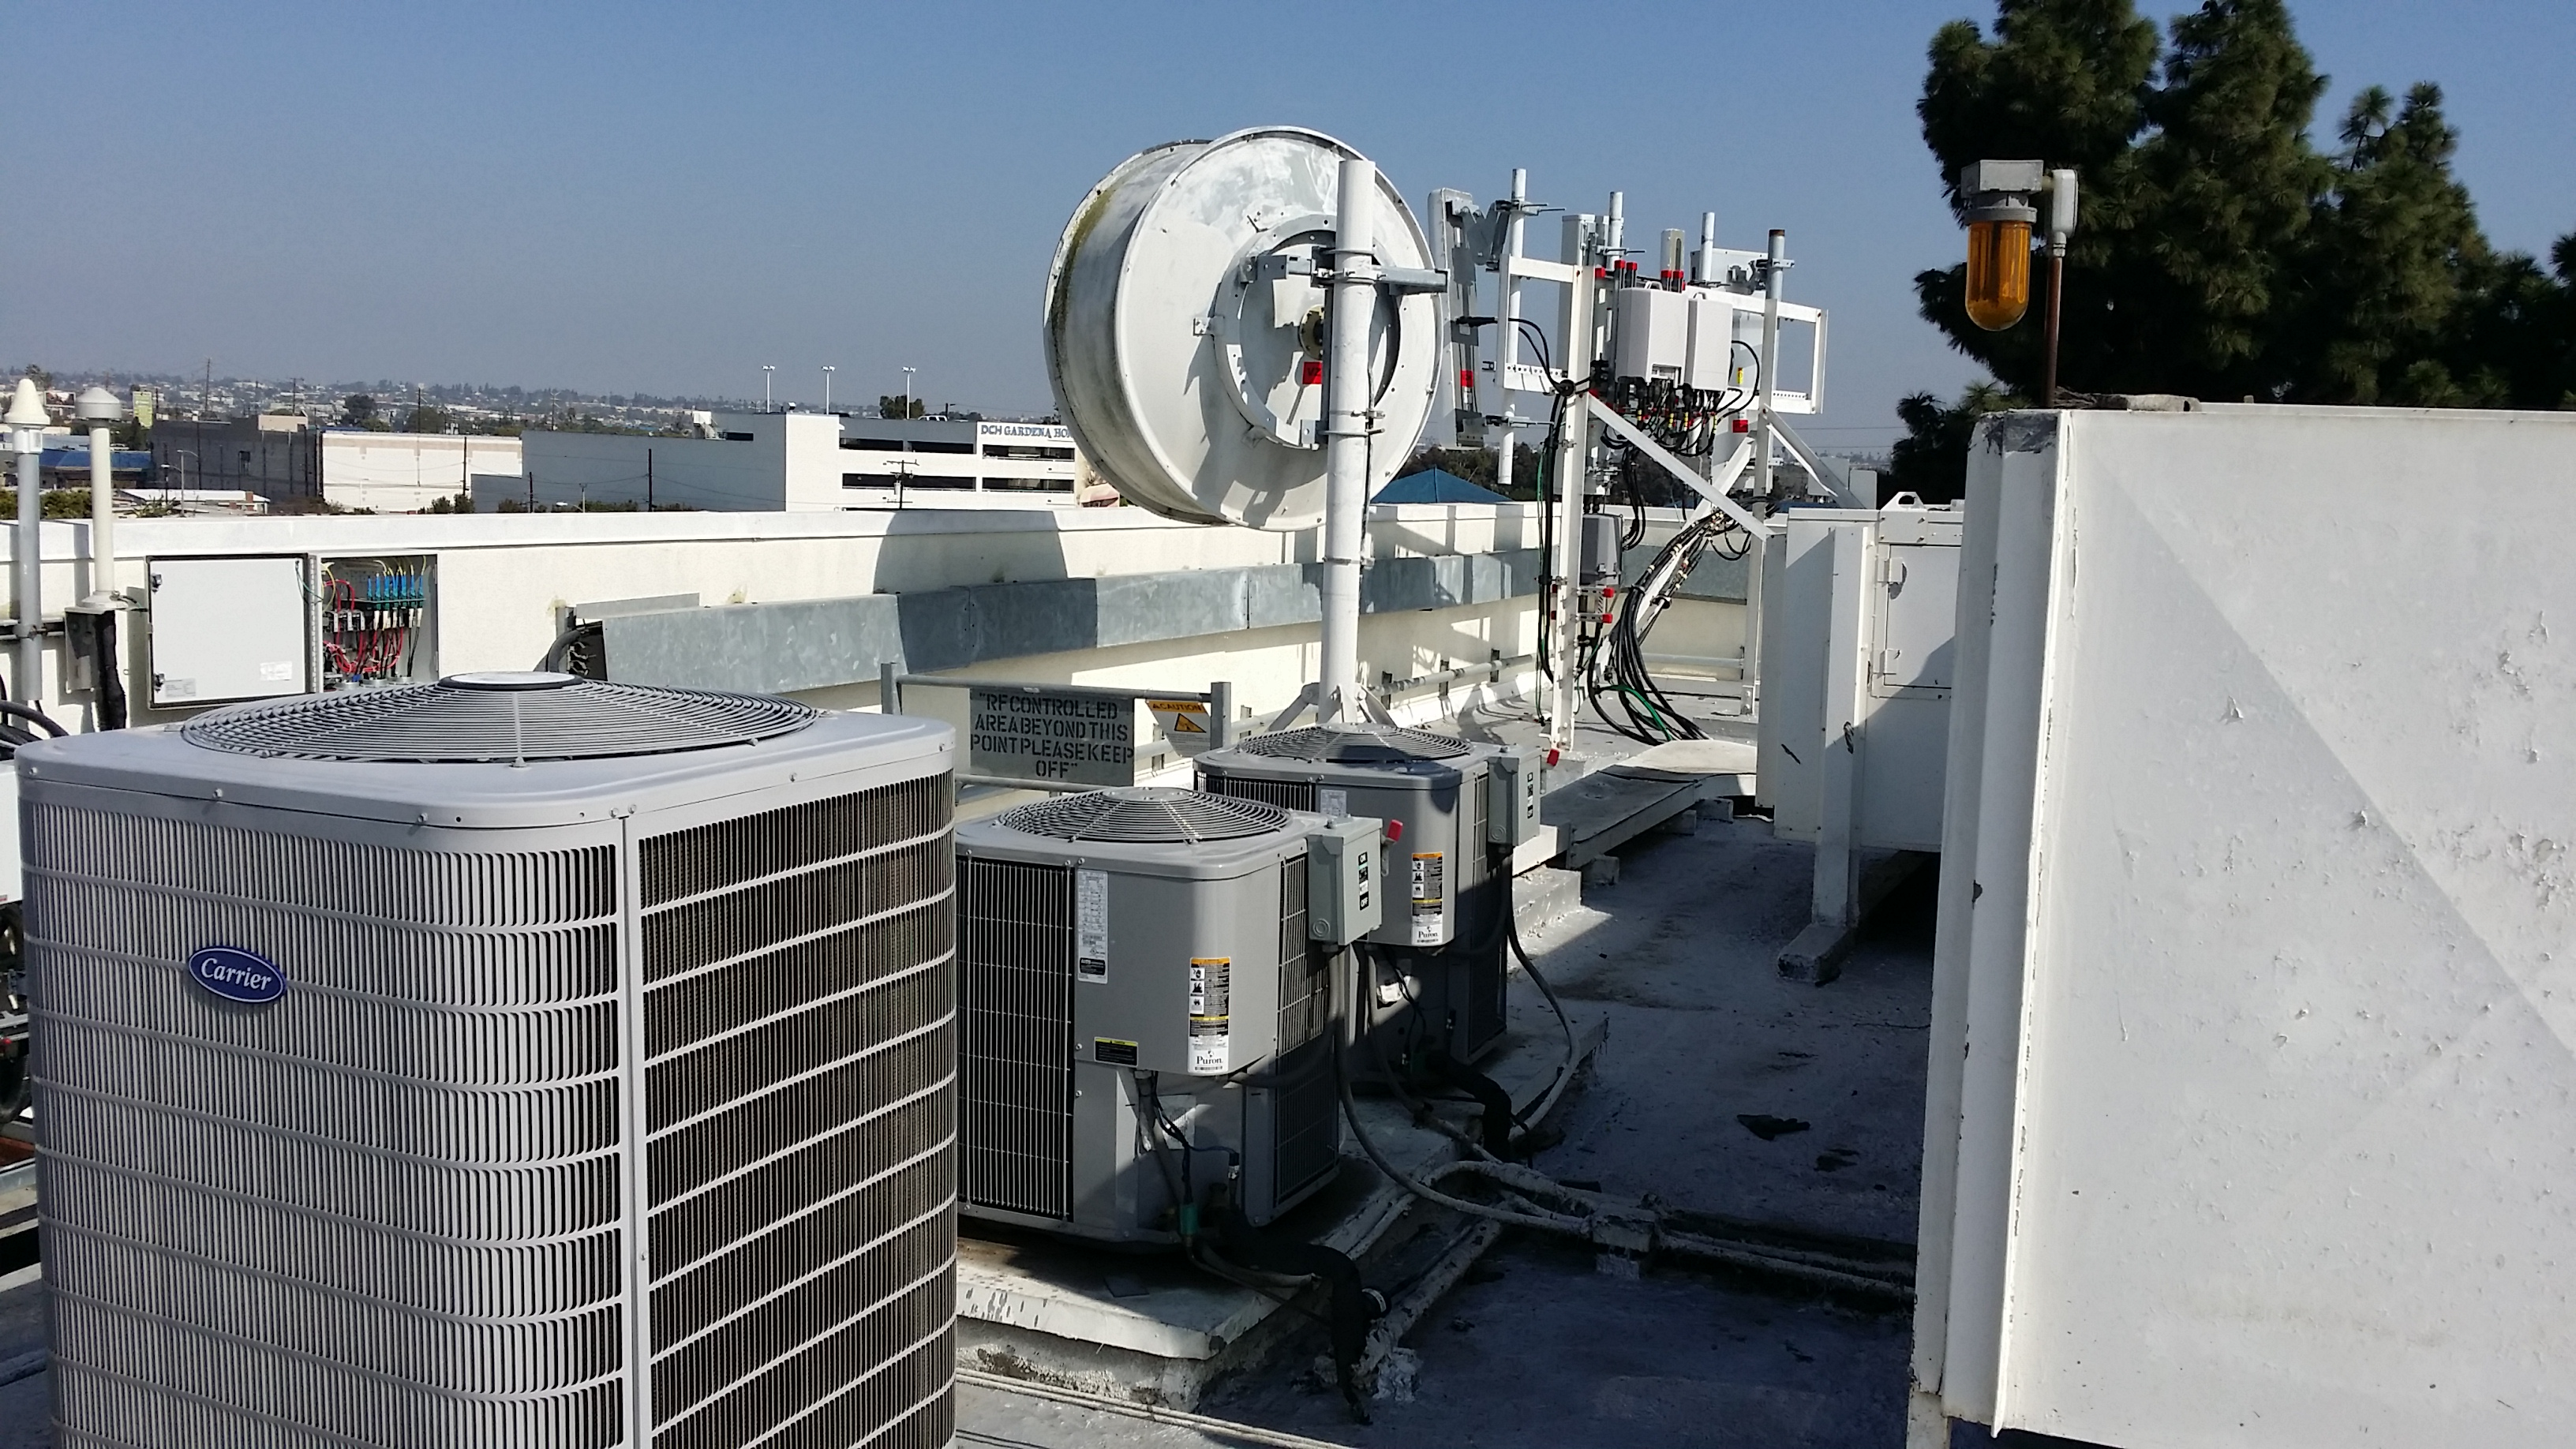 California Air Conditioning Systems Inc. Image Gallery ProView #4A6381